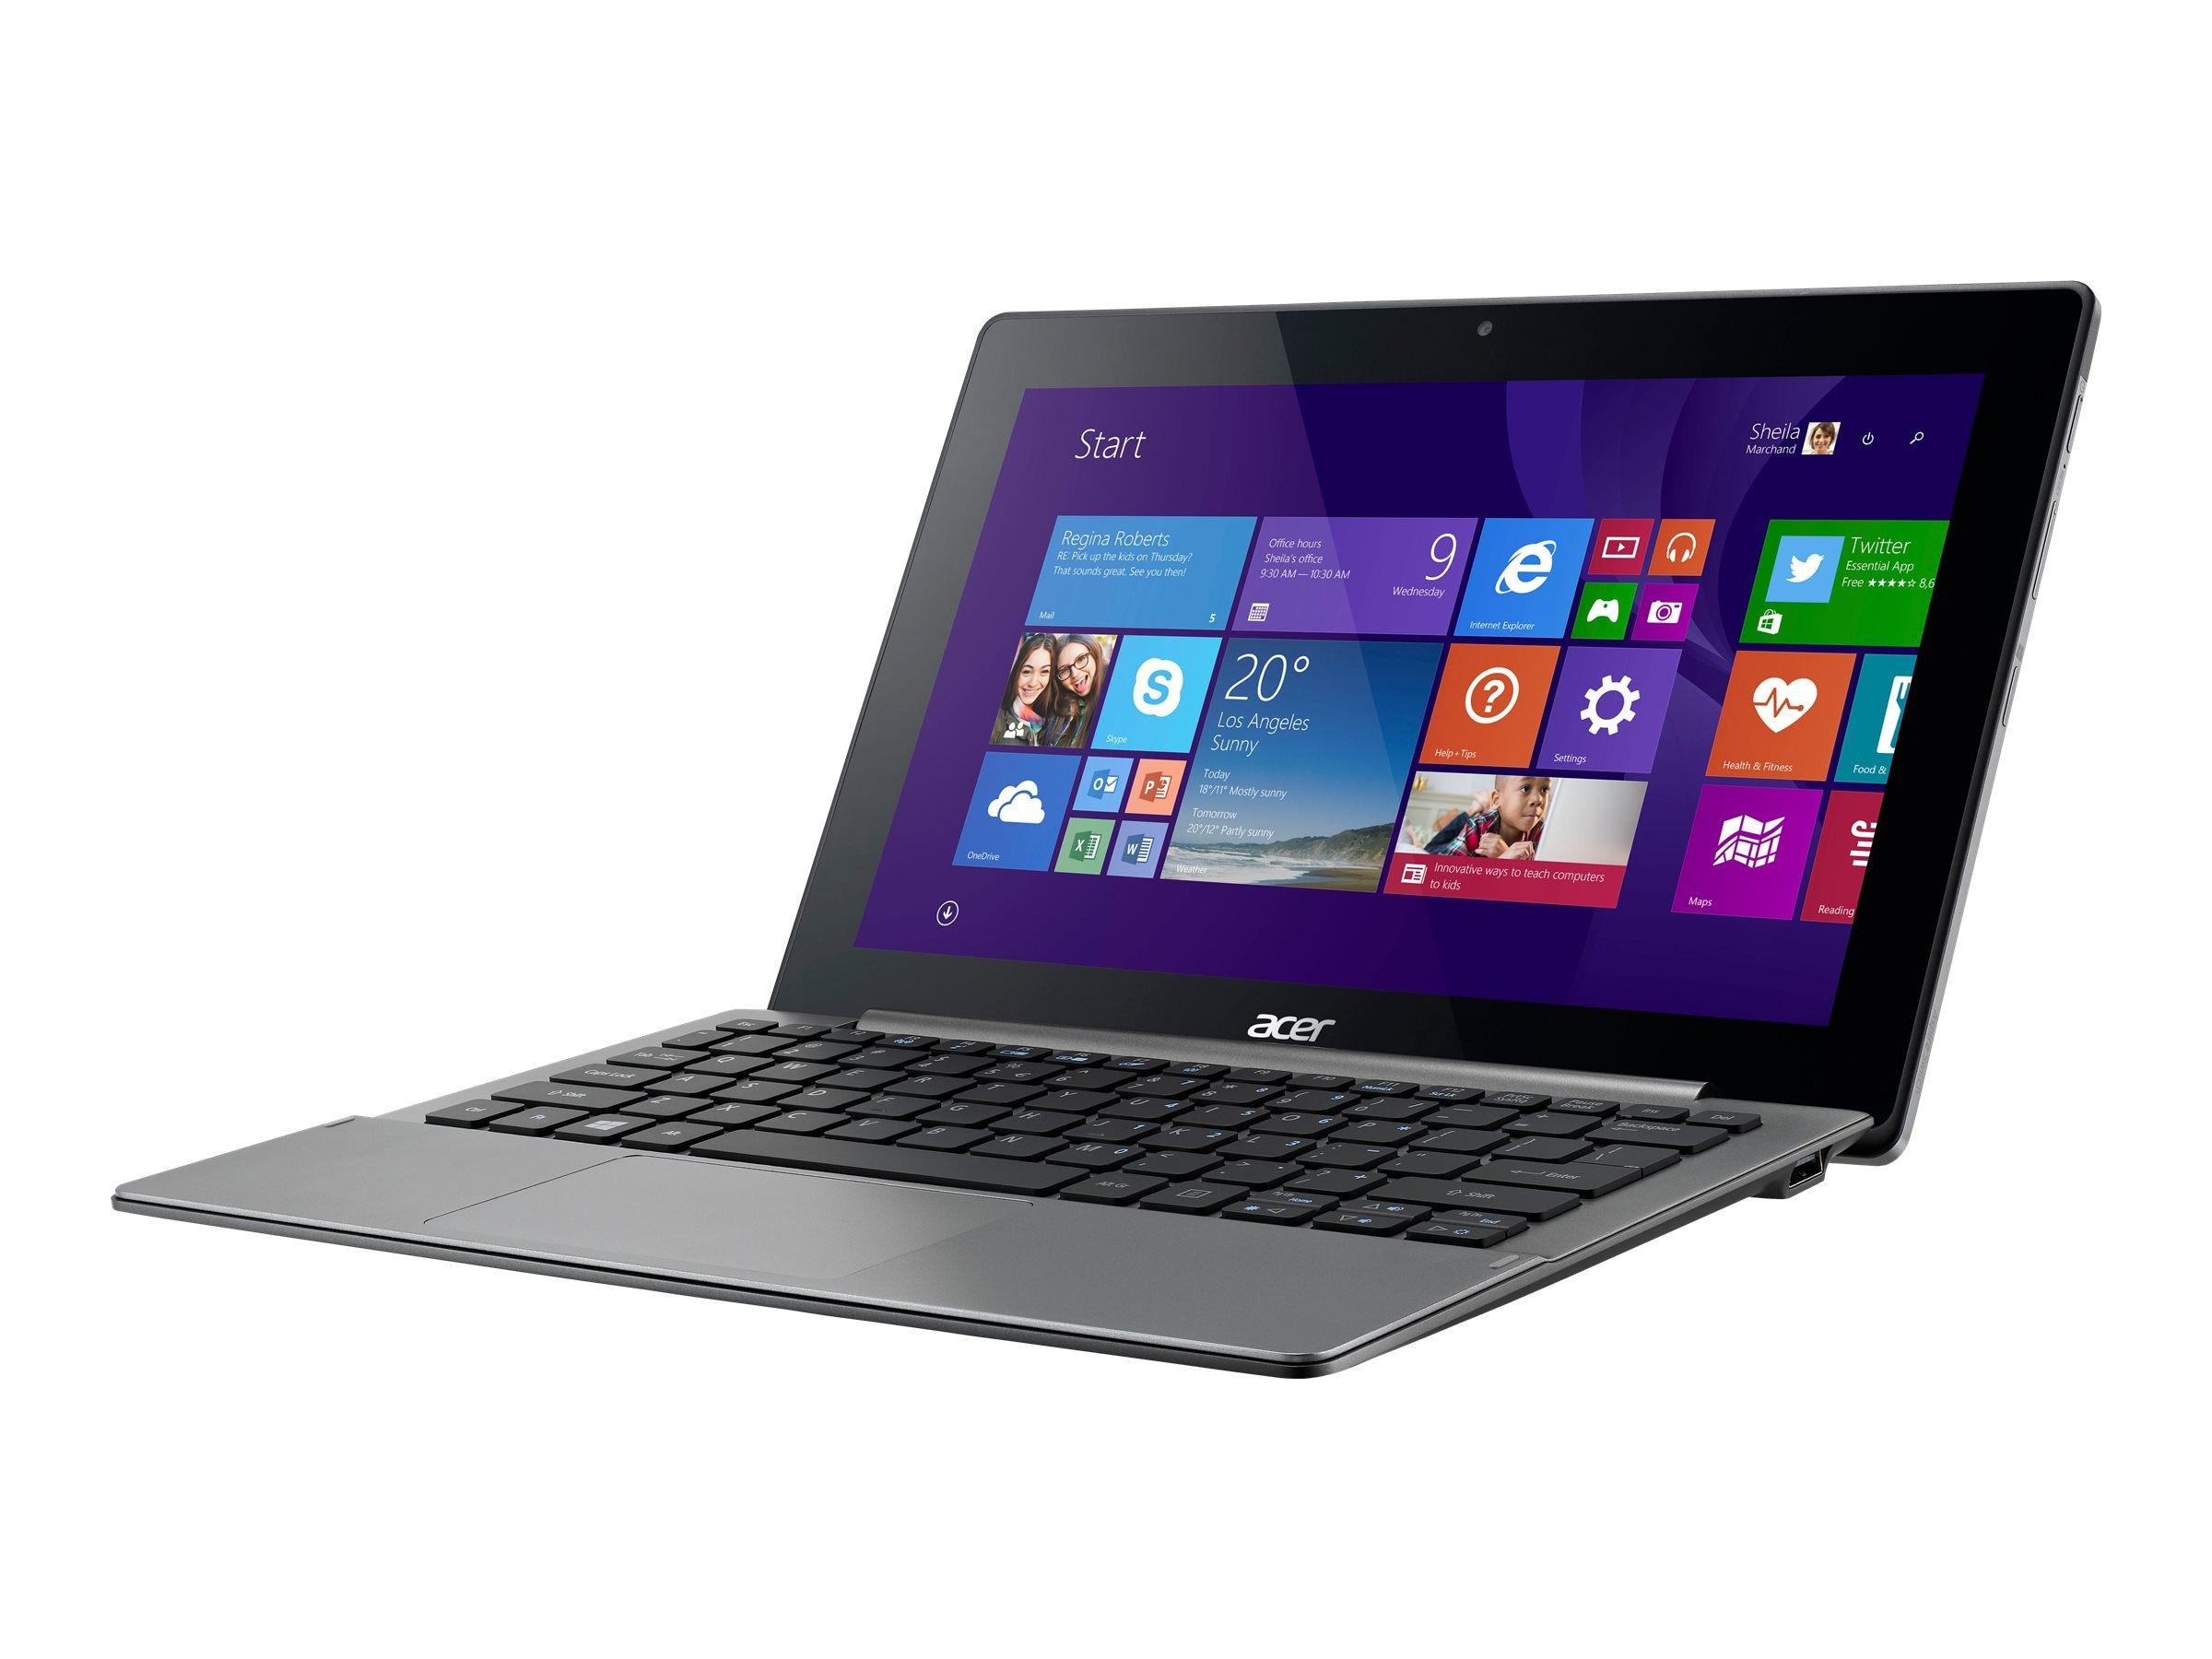 Acer Aspire SW5-173-63DW Core M-5Y10c 0.8GHz 4GB 128GB SSD ac BT 2xWC Kybd+Stylus 11.6 FHD MT W01H64, NT.G2TAA.004, 30870509, Tablets